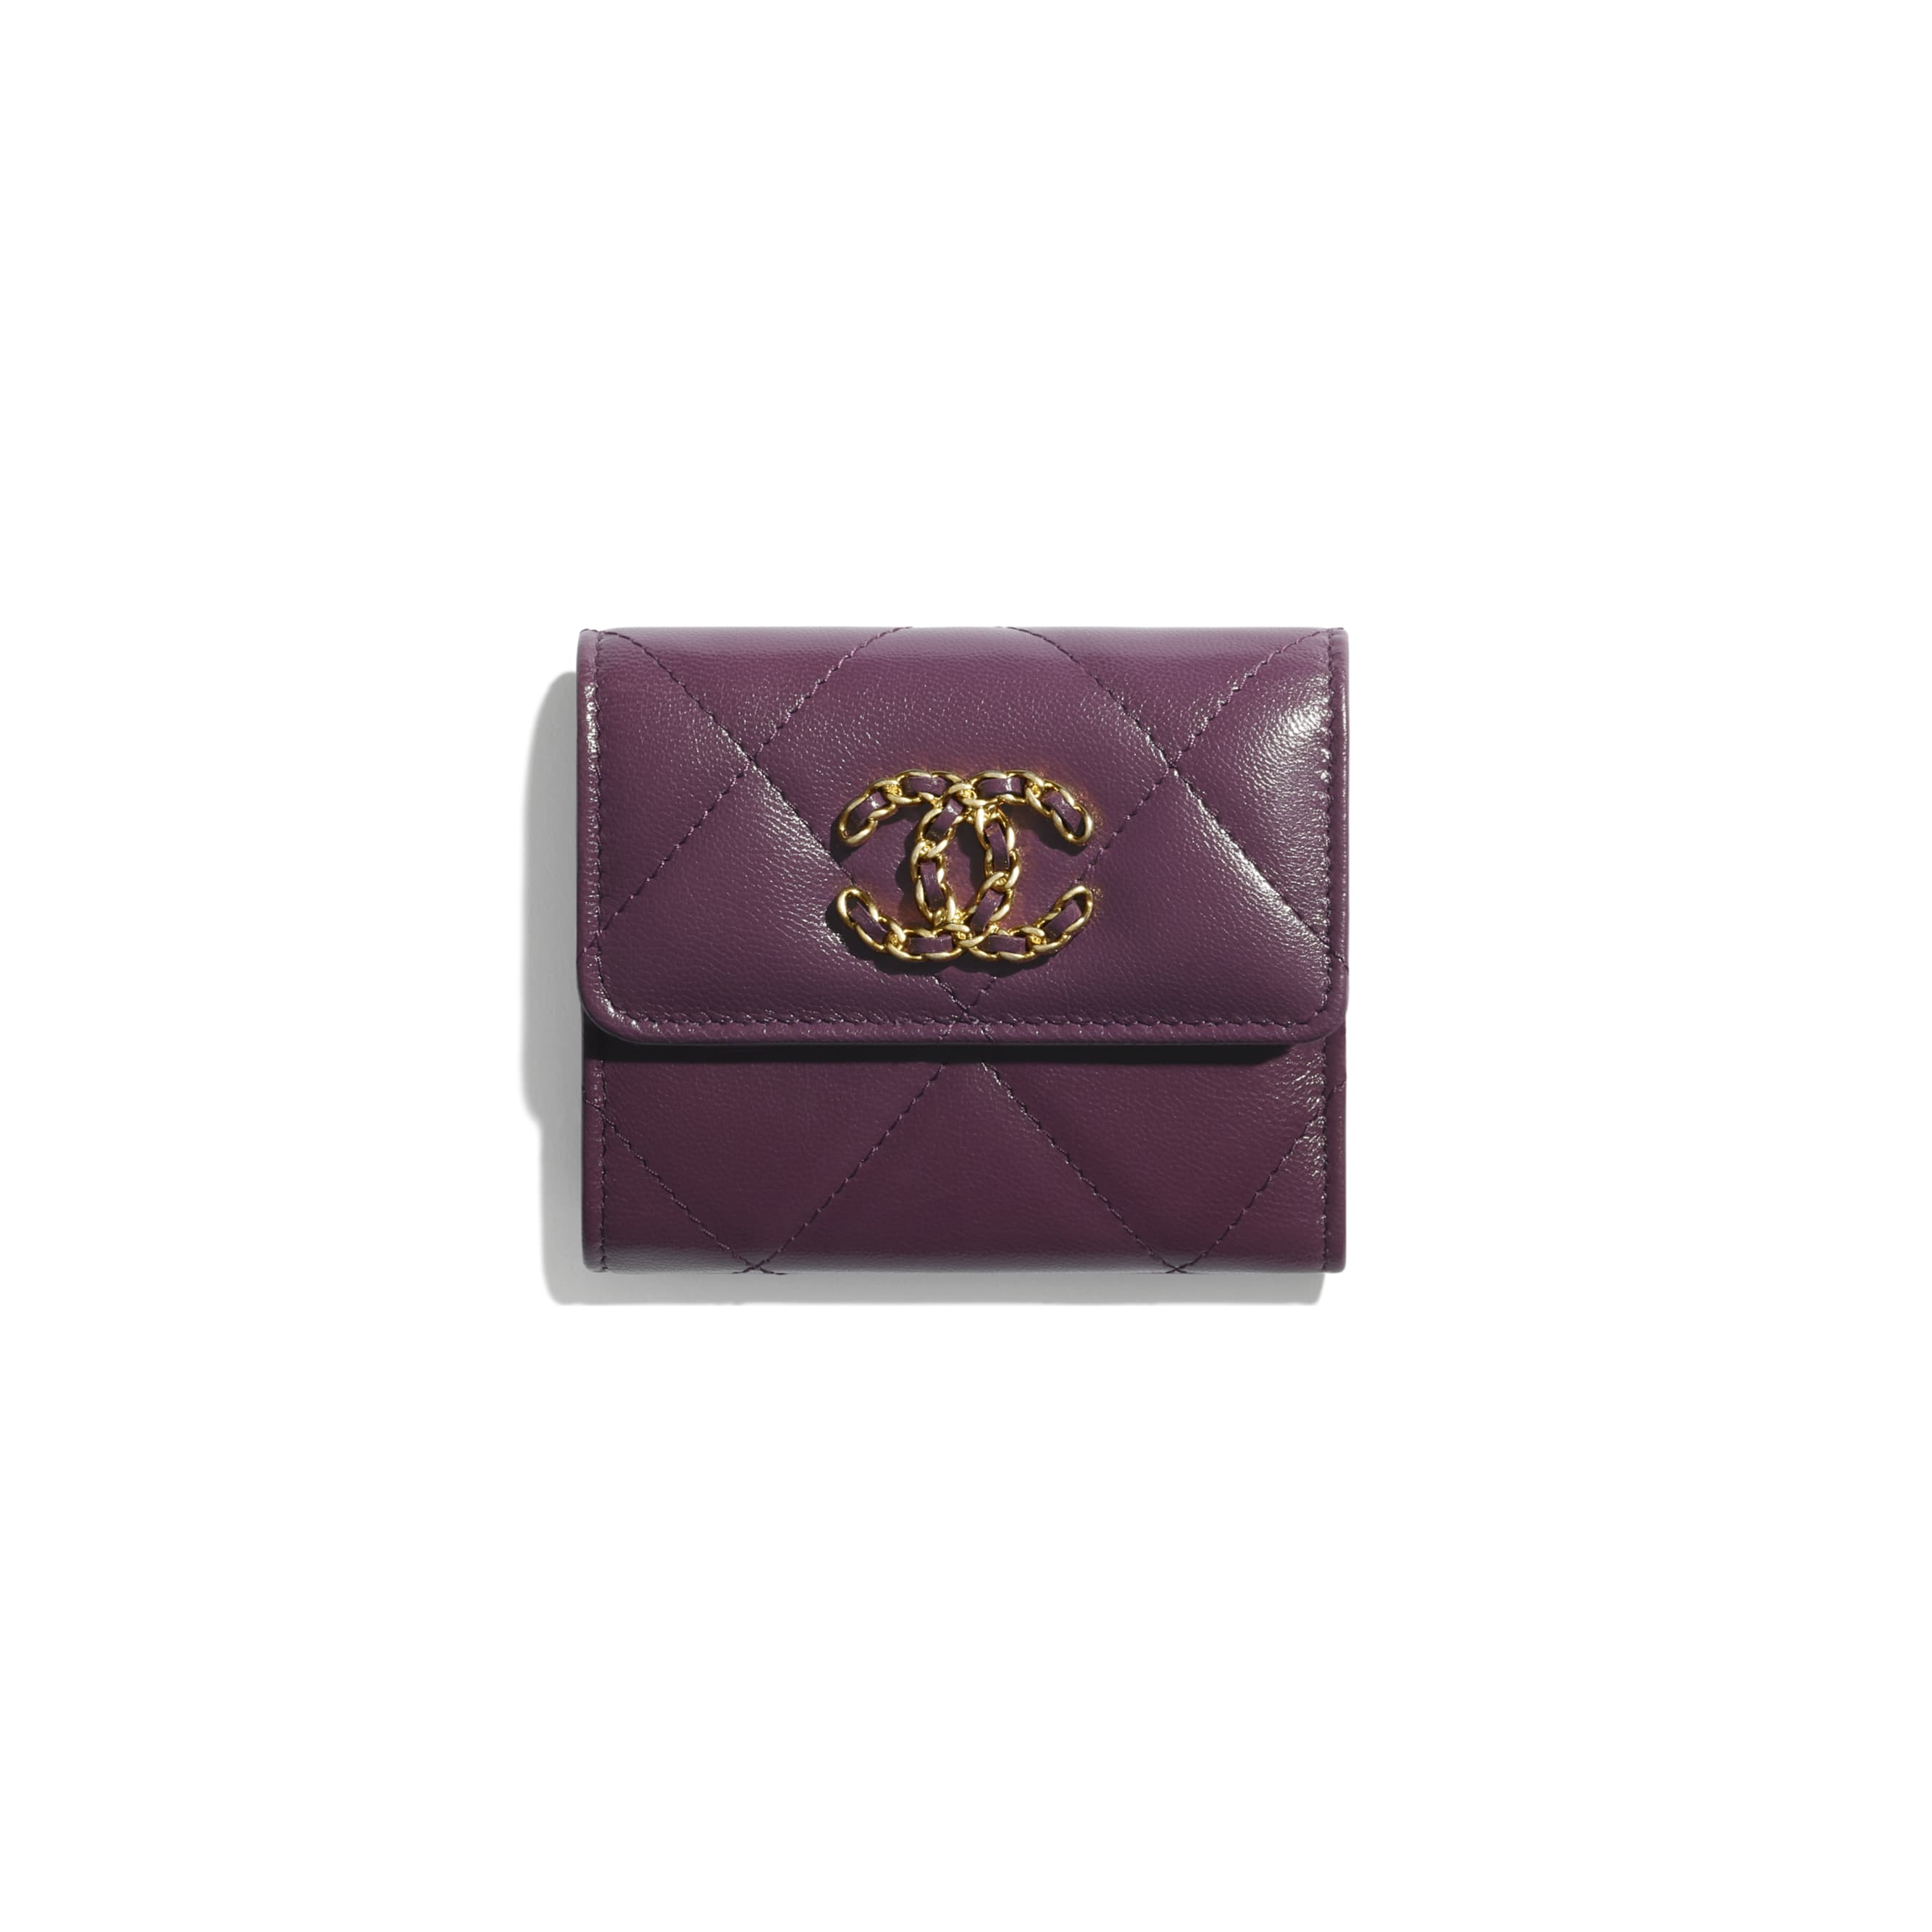 CHANEL 19 Small Flap Wallet - Purple - Shiny Goatskin & Gold-Tone Metal - CHANEL - Default view - see standard sized version